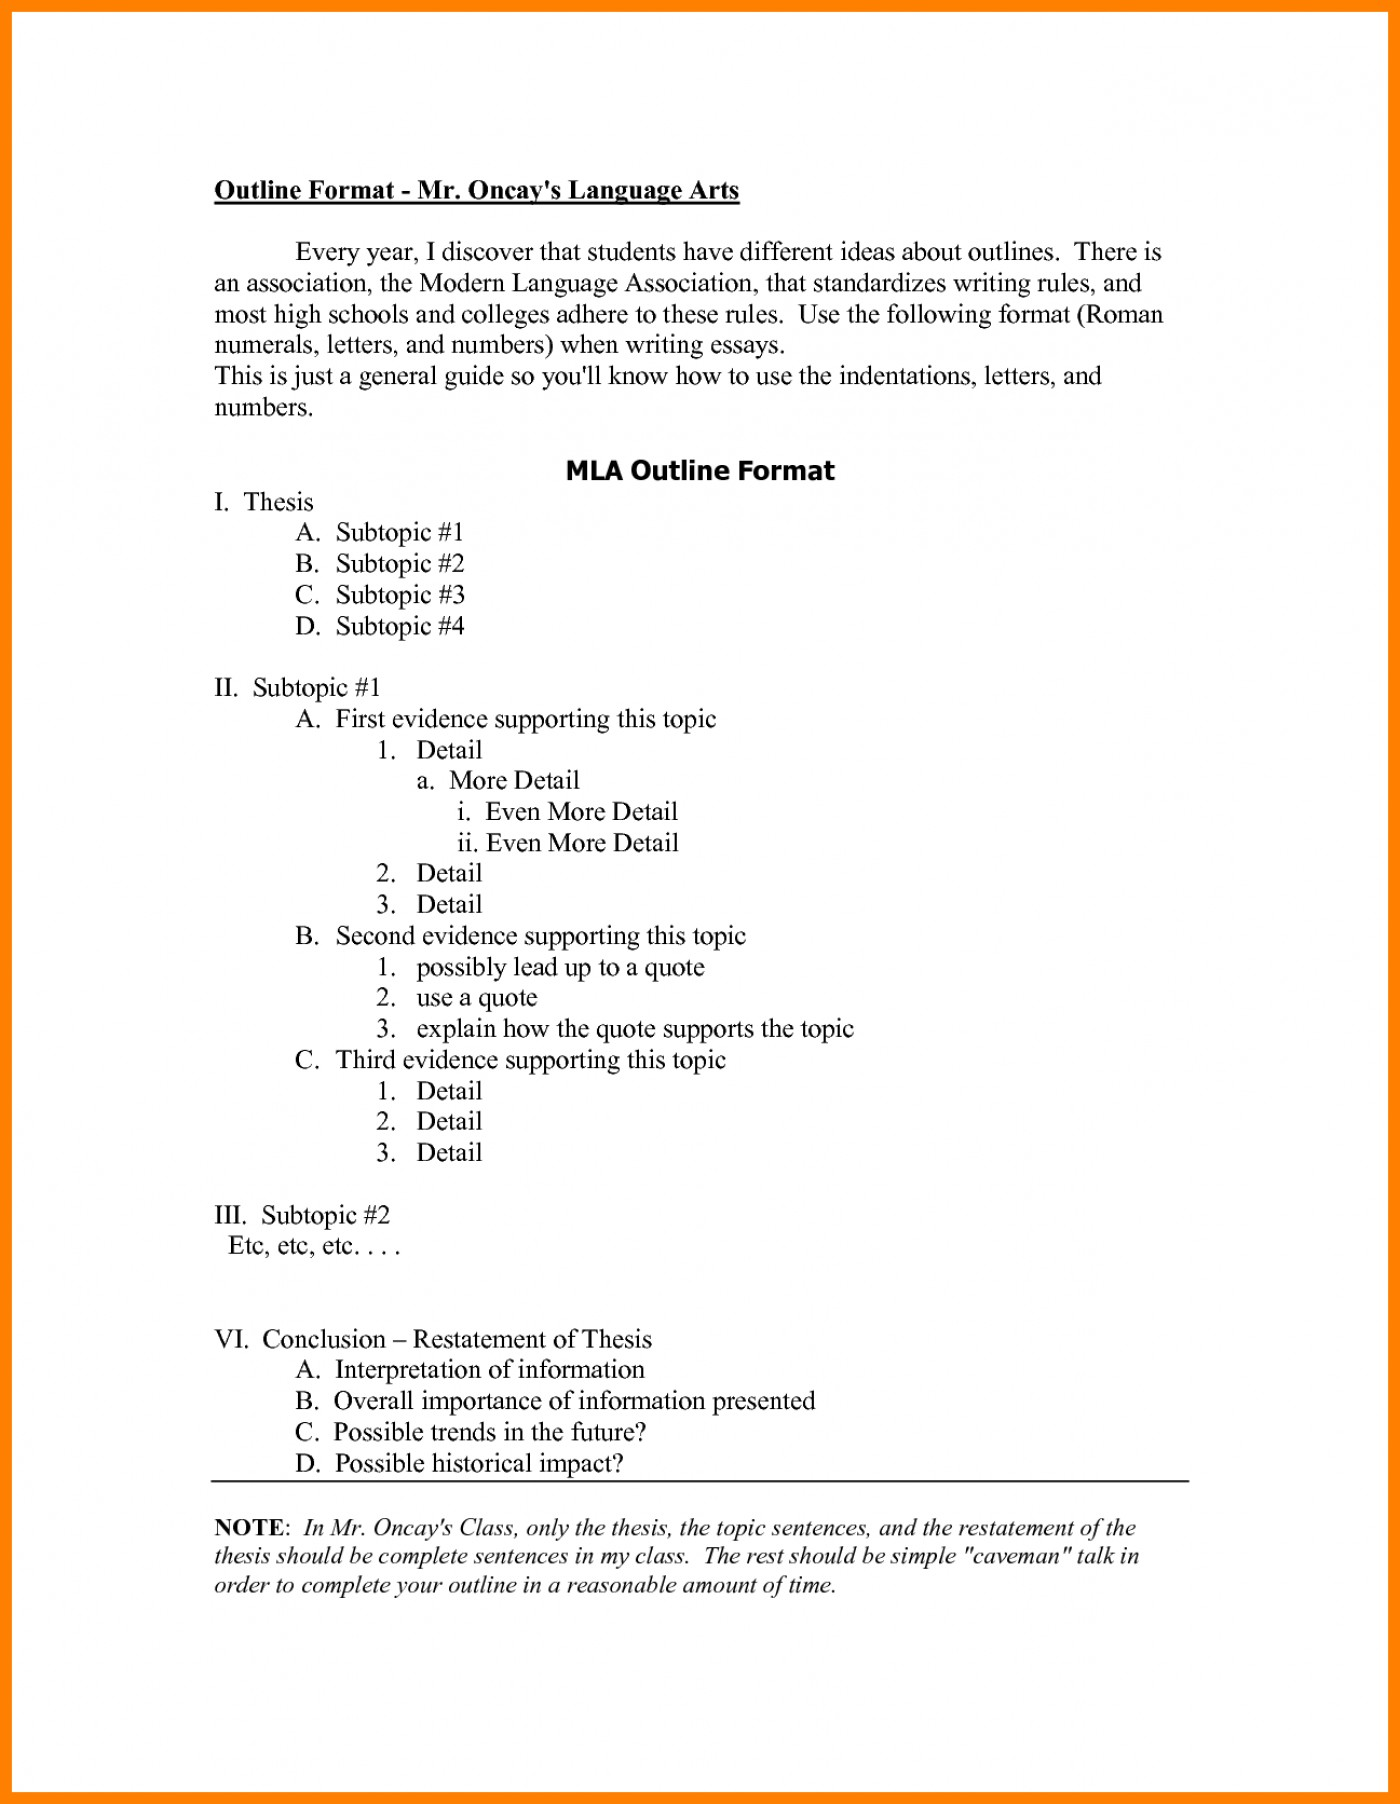 016 Research Paper Mla Format Outlines 148 Awesome Example With Cover Page Sample Style 1400